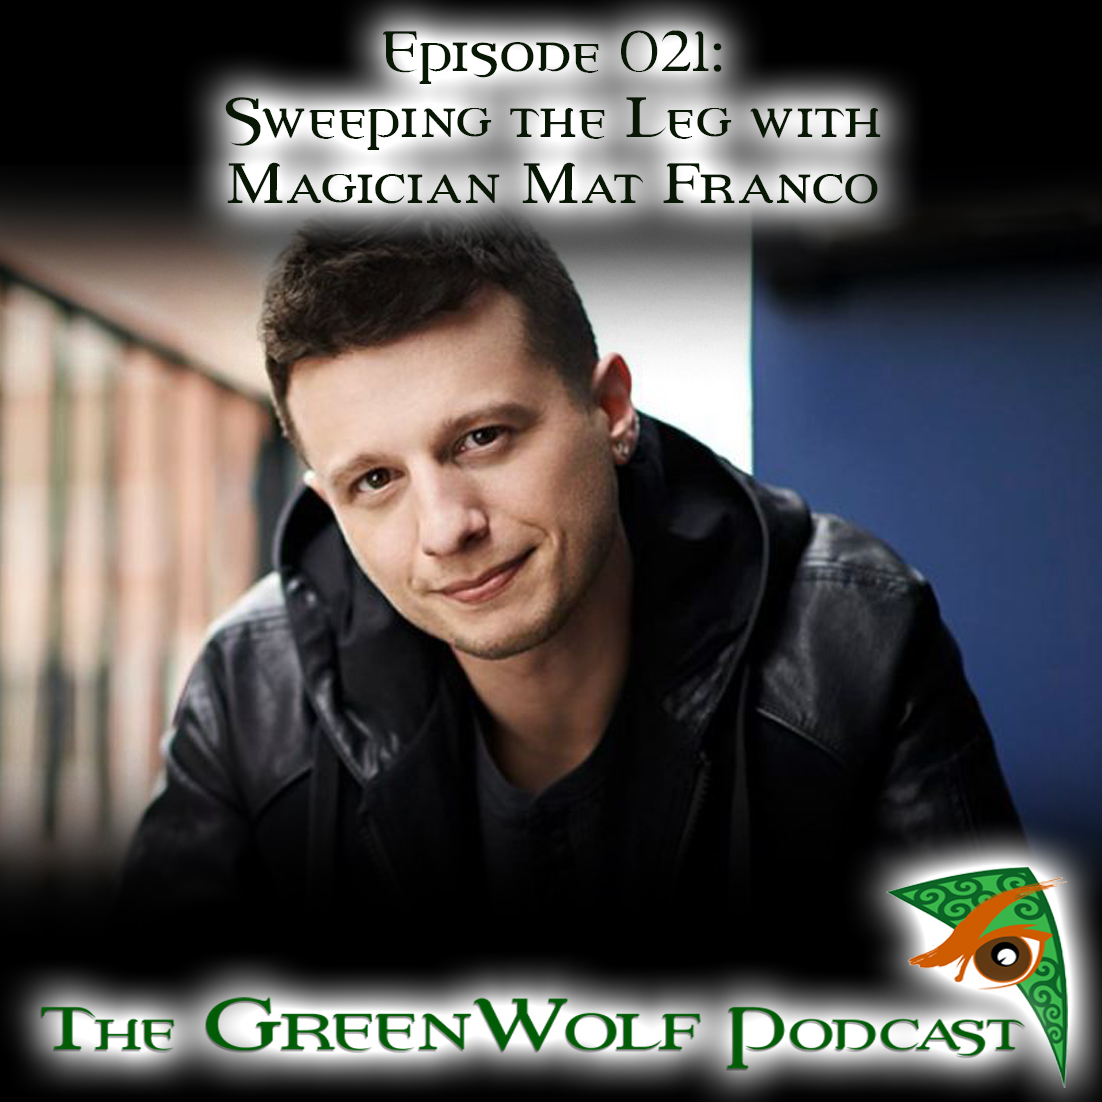 The GreenWolf Podcast - Ep 021 -Sweeping the Leg with Magician Mat Franco